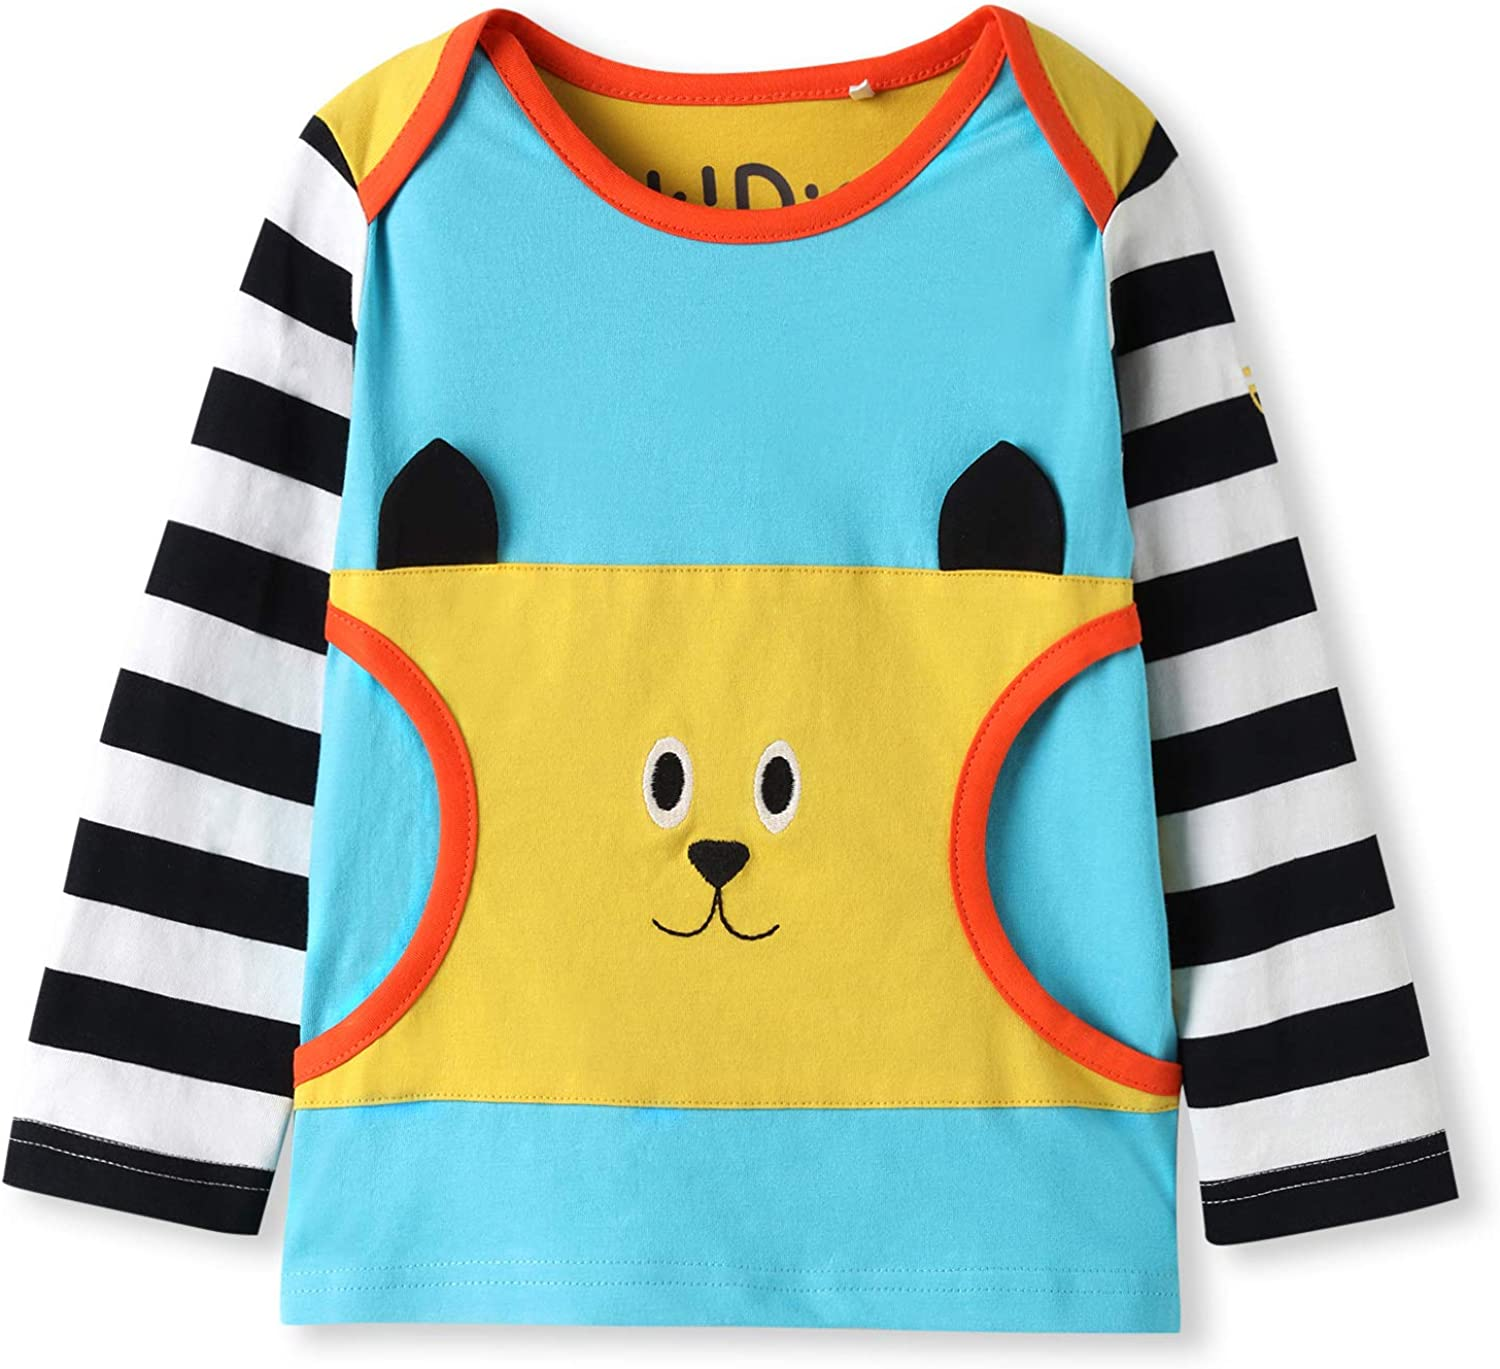 kIDio Organic Cotton Applique Baby Infant Toddler Long Sleeve Top - Girl Boy Tee Shirt Blouse (0-4 Years)